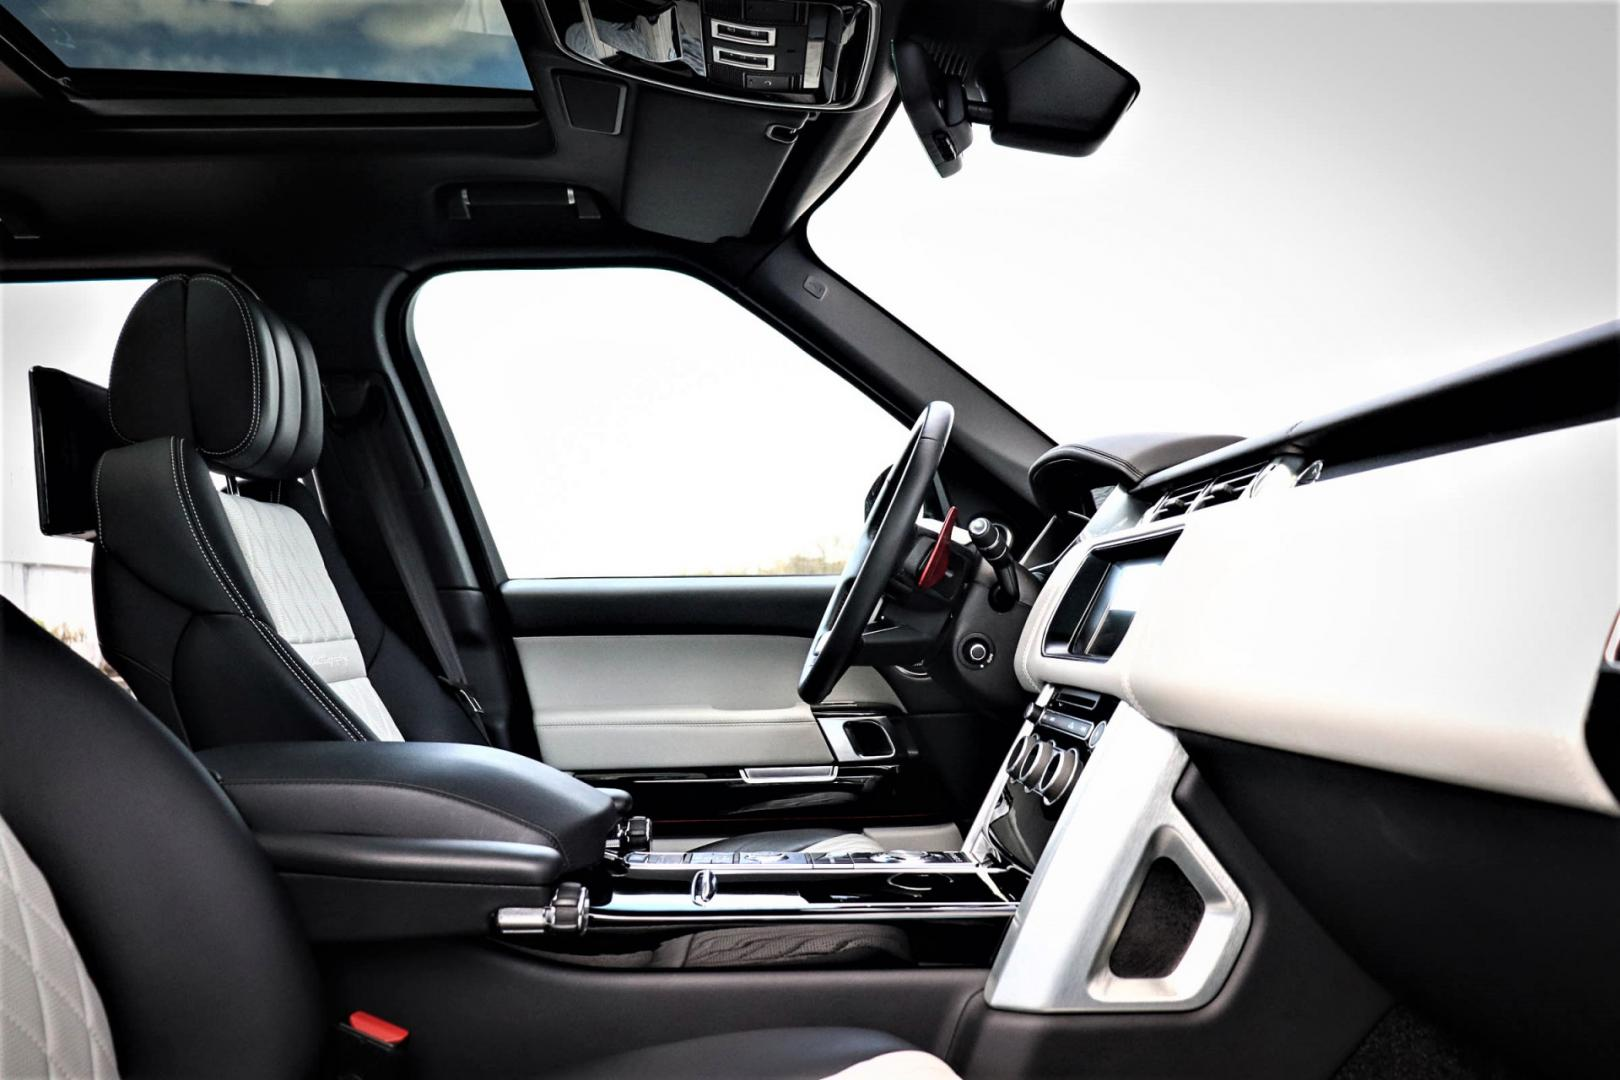 Range Rover in SVO Spectral Blue Ultra interieur